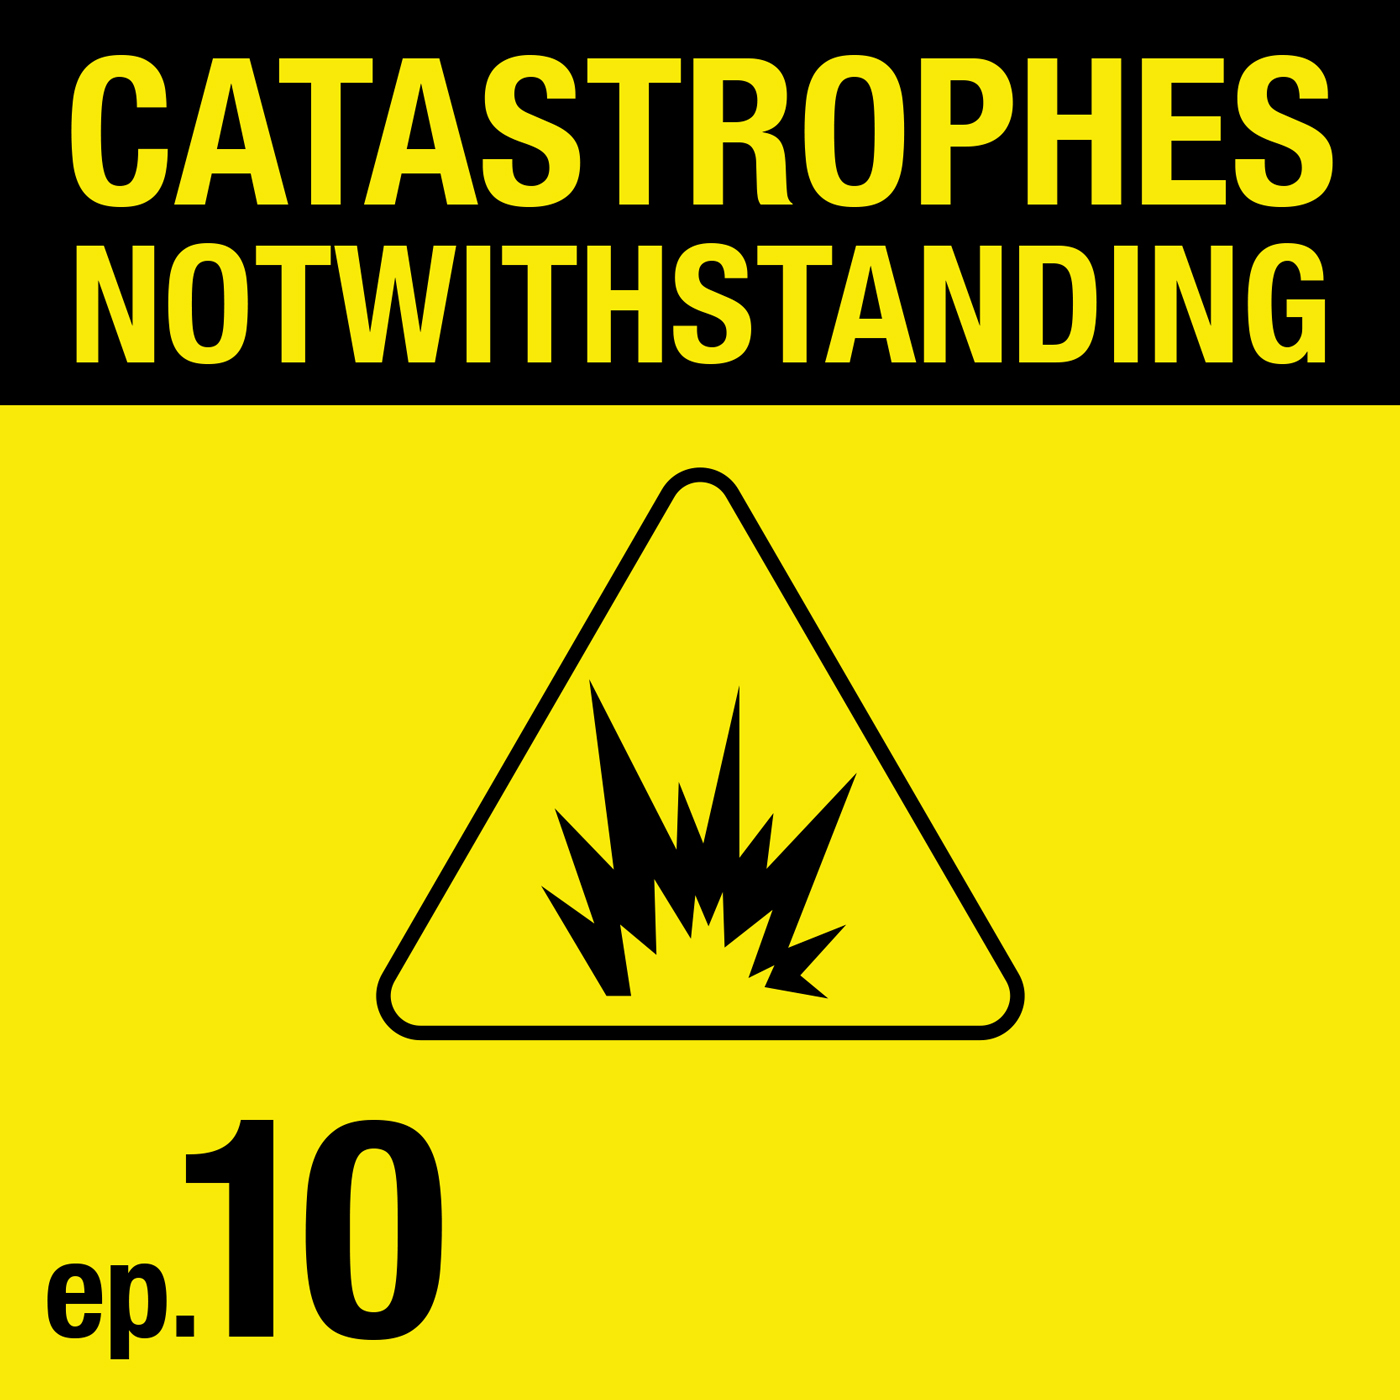 Cover Image of Catastrophes Notwithstanding Episode 10